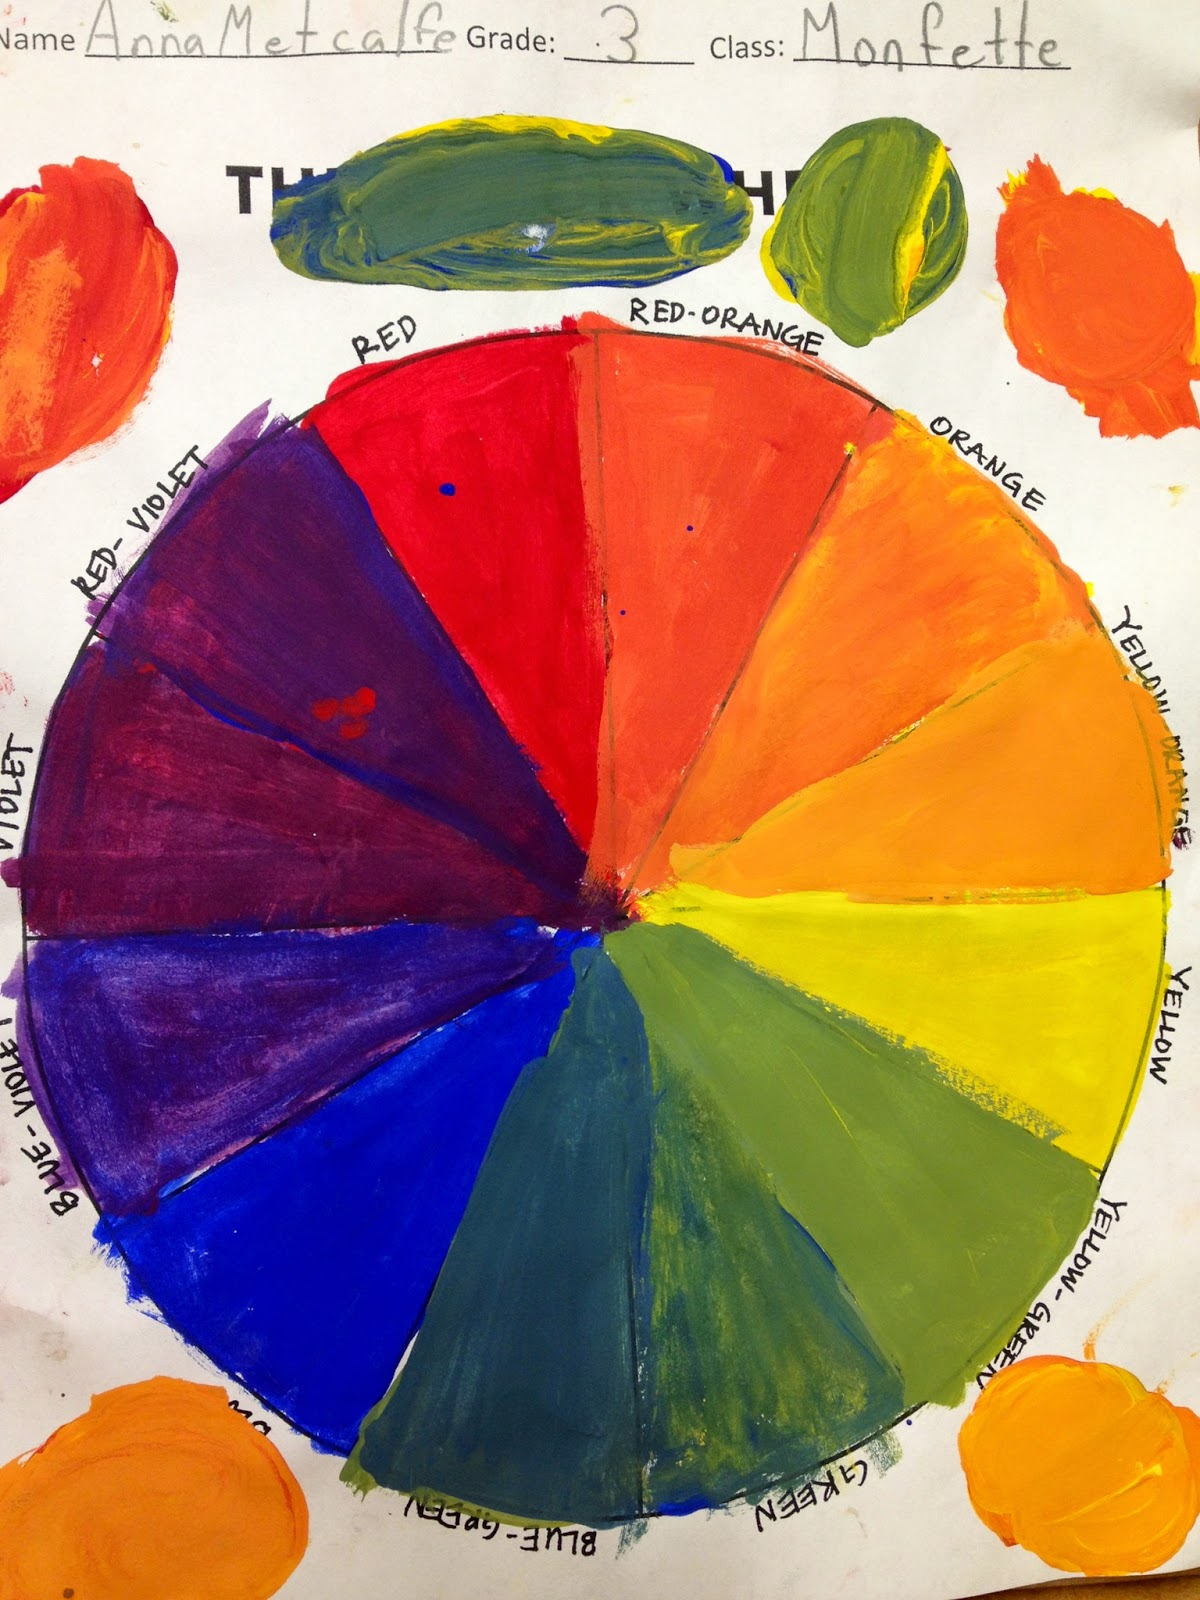 After The Color Wheels Dried We Learned About Concept Of Radial Symmetry Which Can Be Seen In Nature Is Around A Central